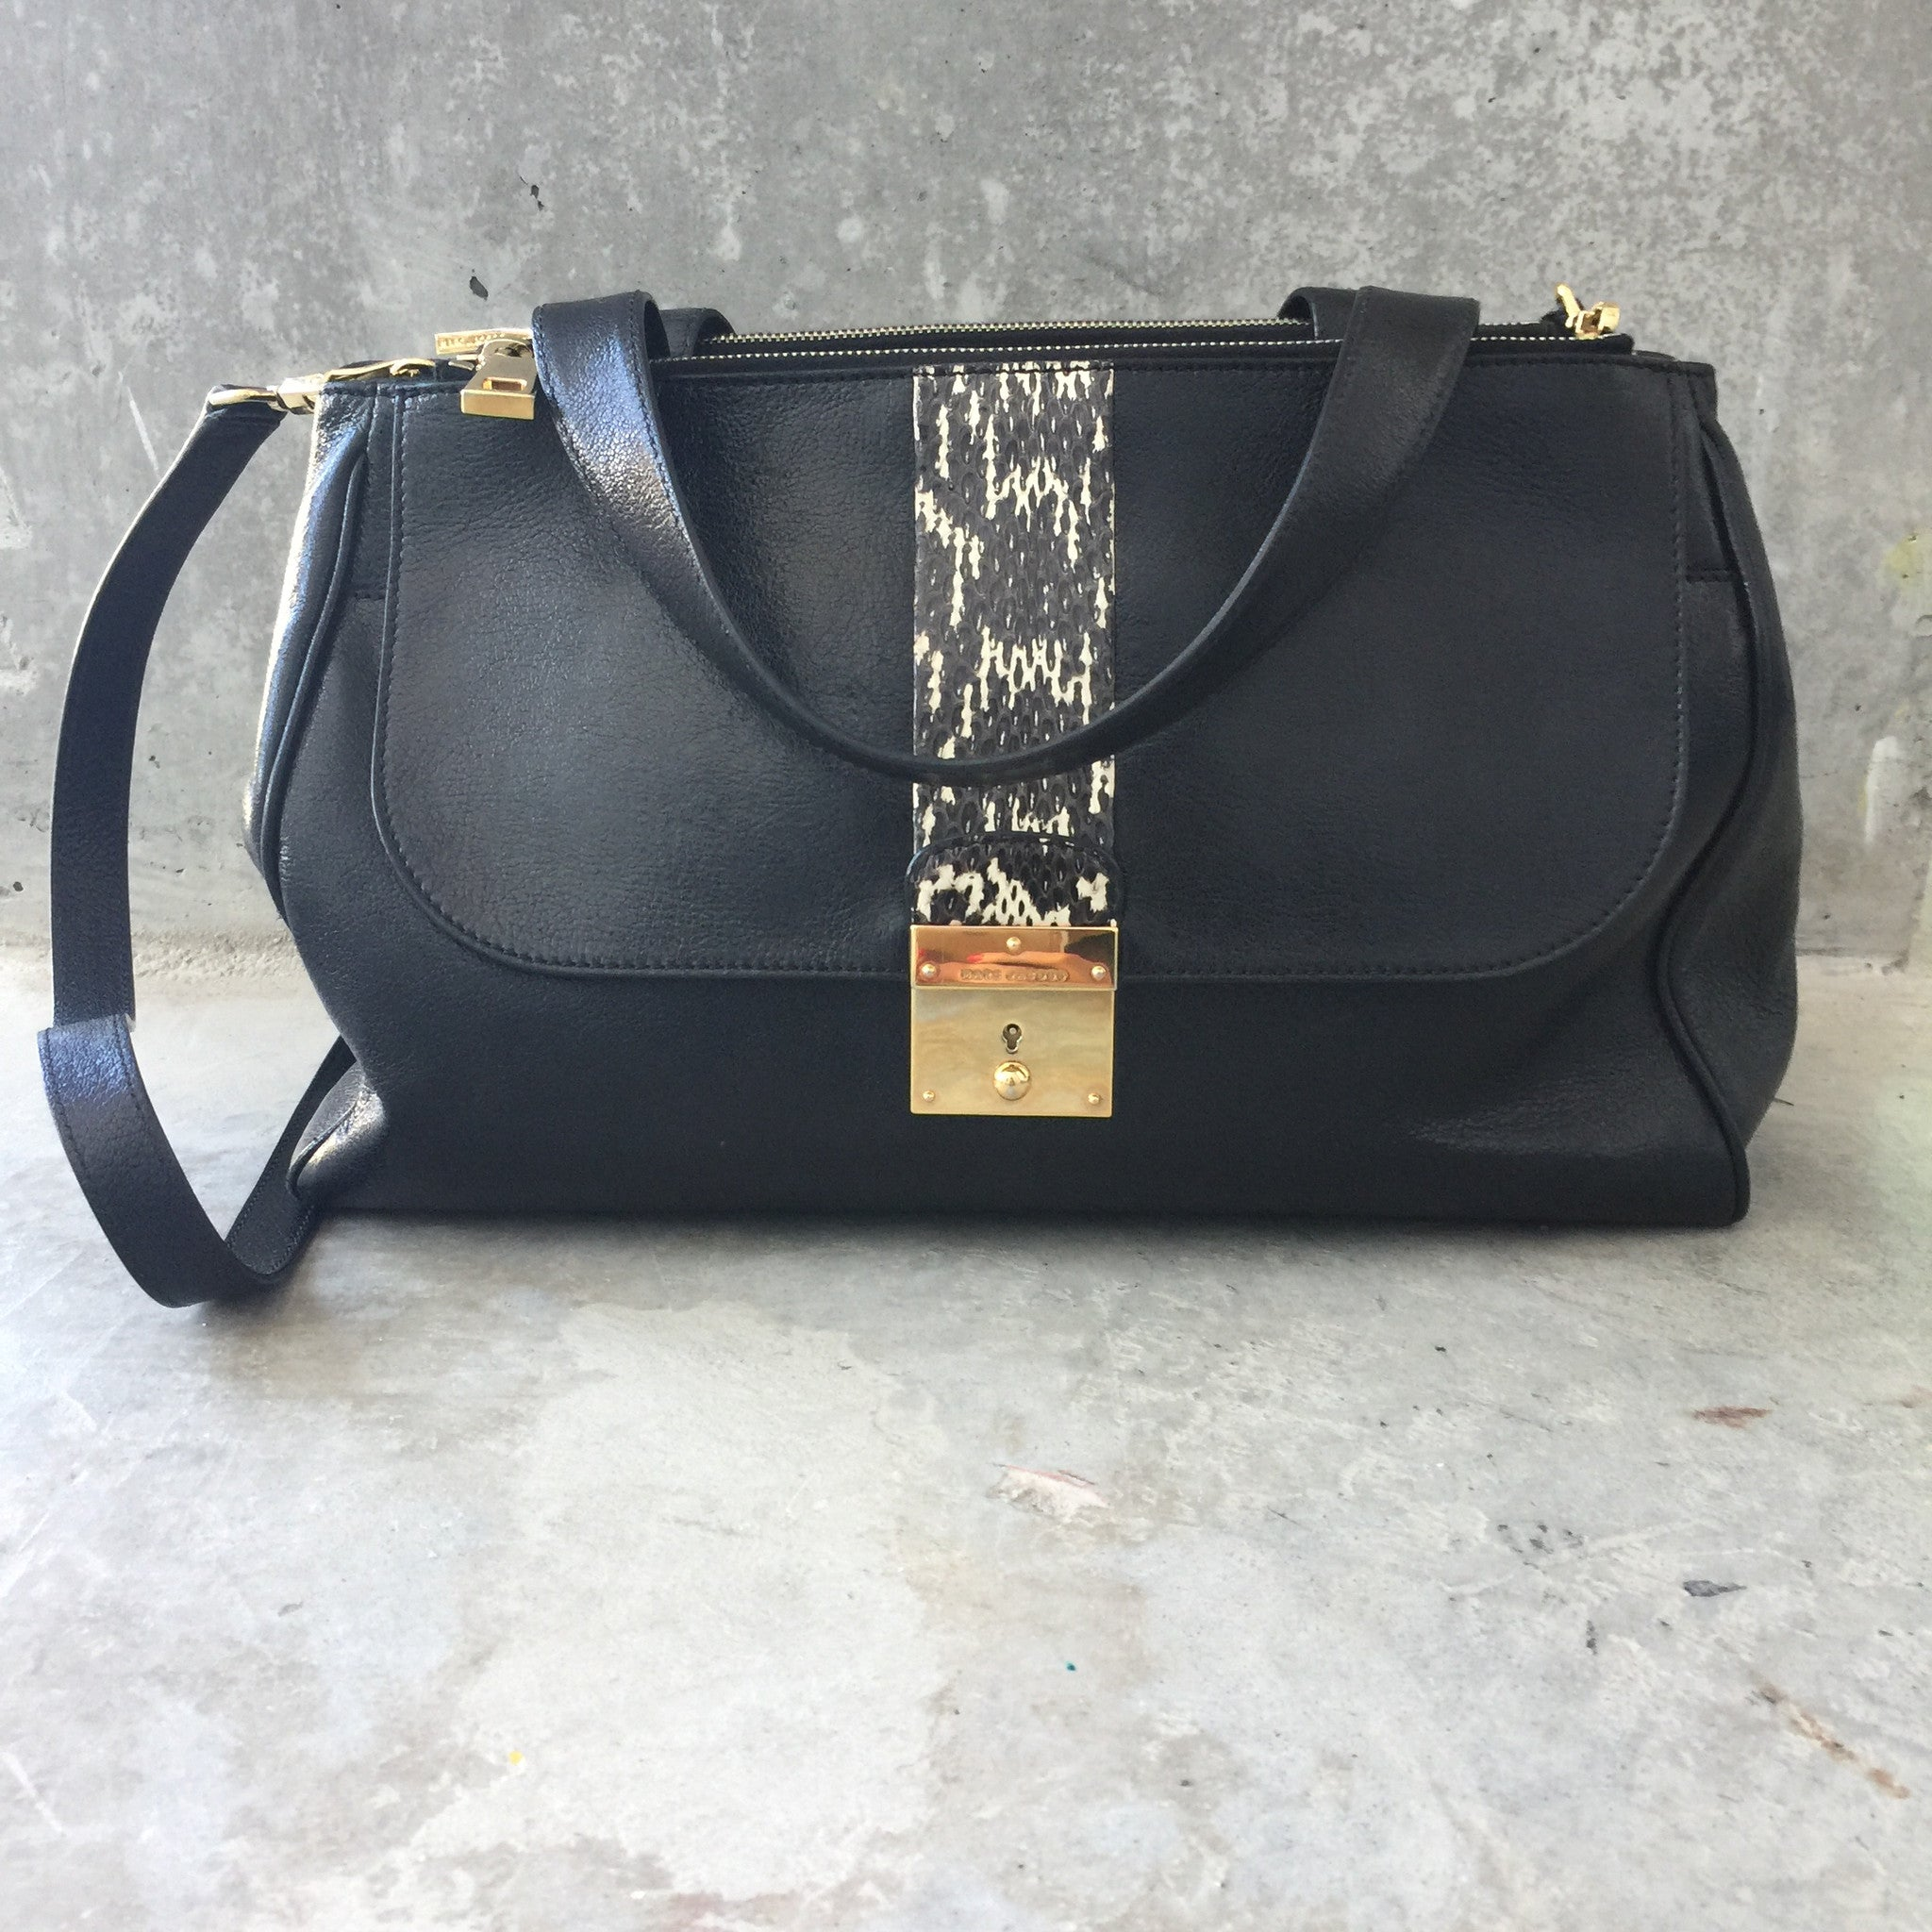 Authentic MARC JACOBS Bag